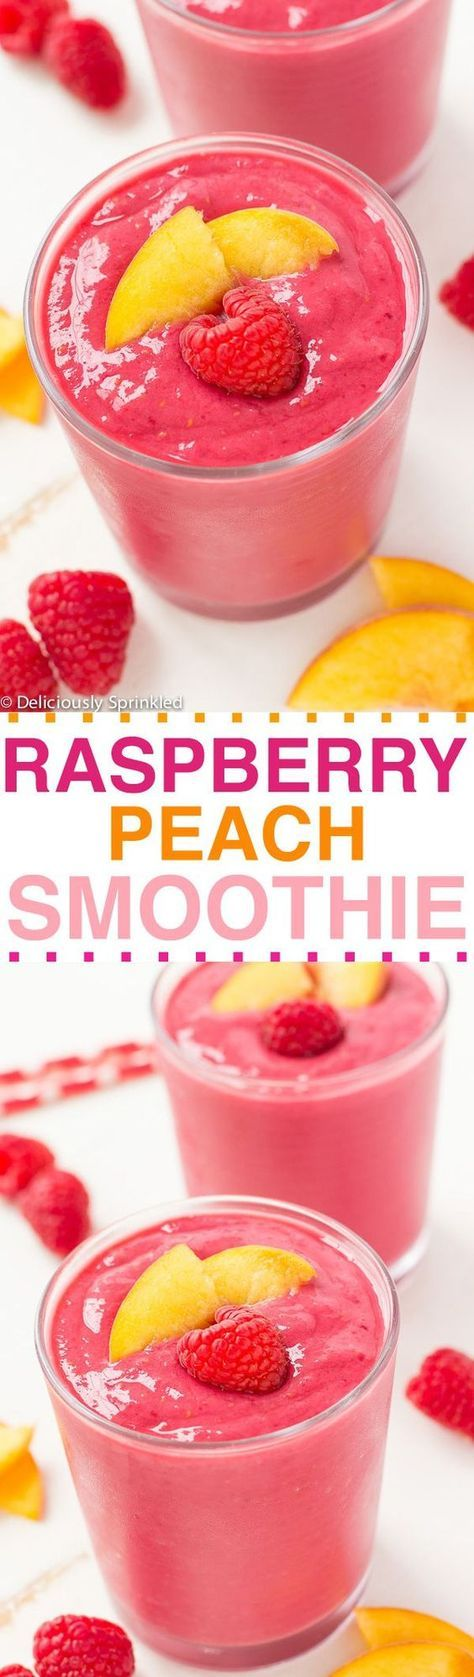 Making this Raspberry Peach Smoothie is super easy. All you need is some frozen raspberries, peaches, vanilla greek yogurt and vanilla almond milk